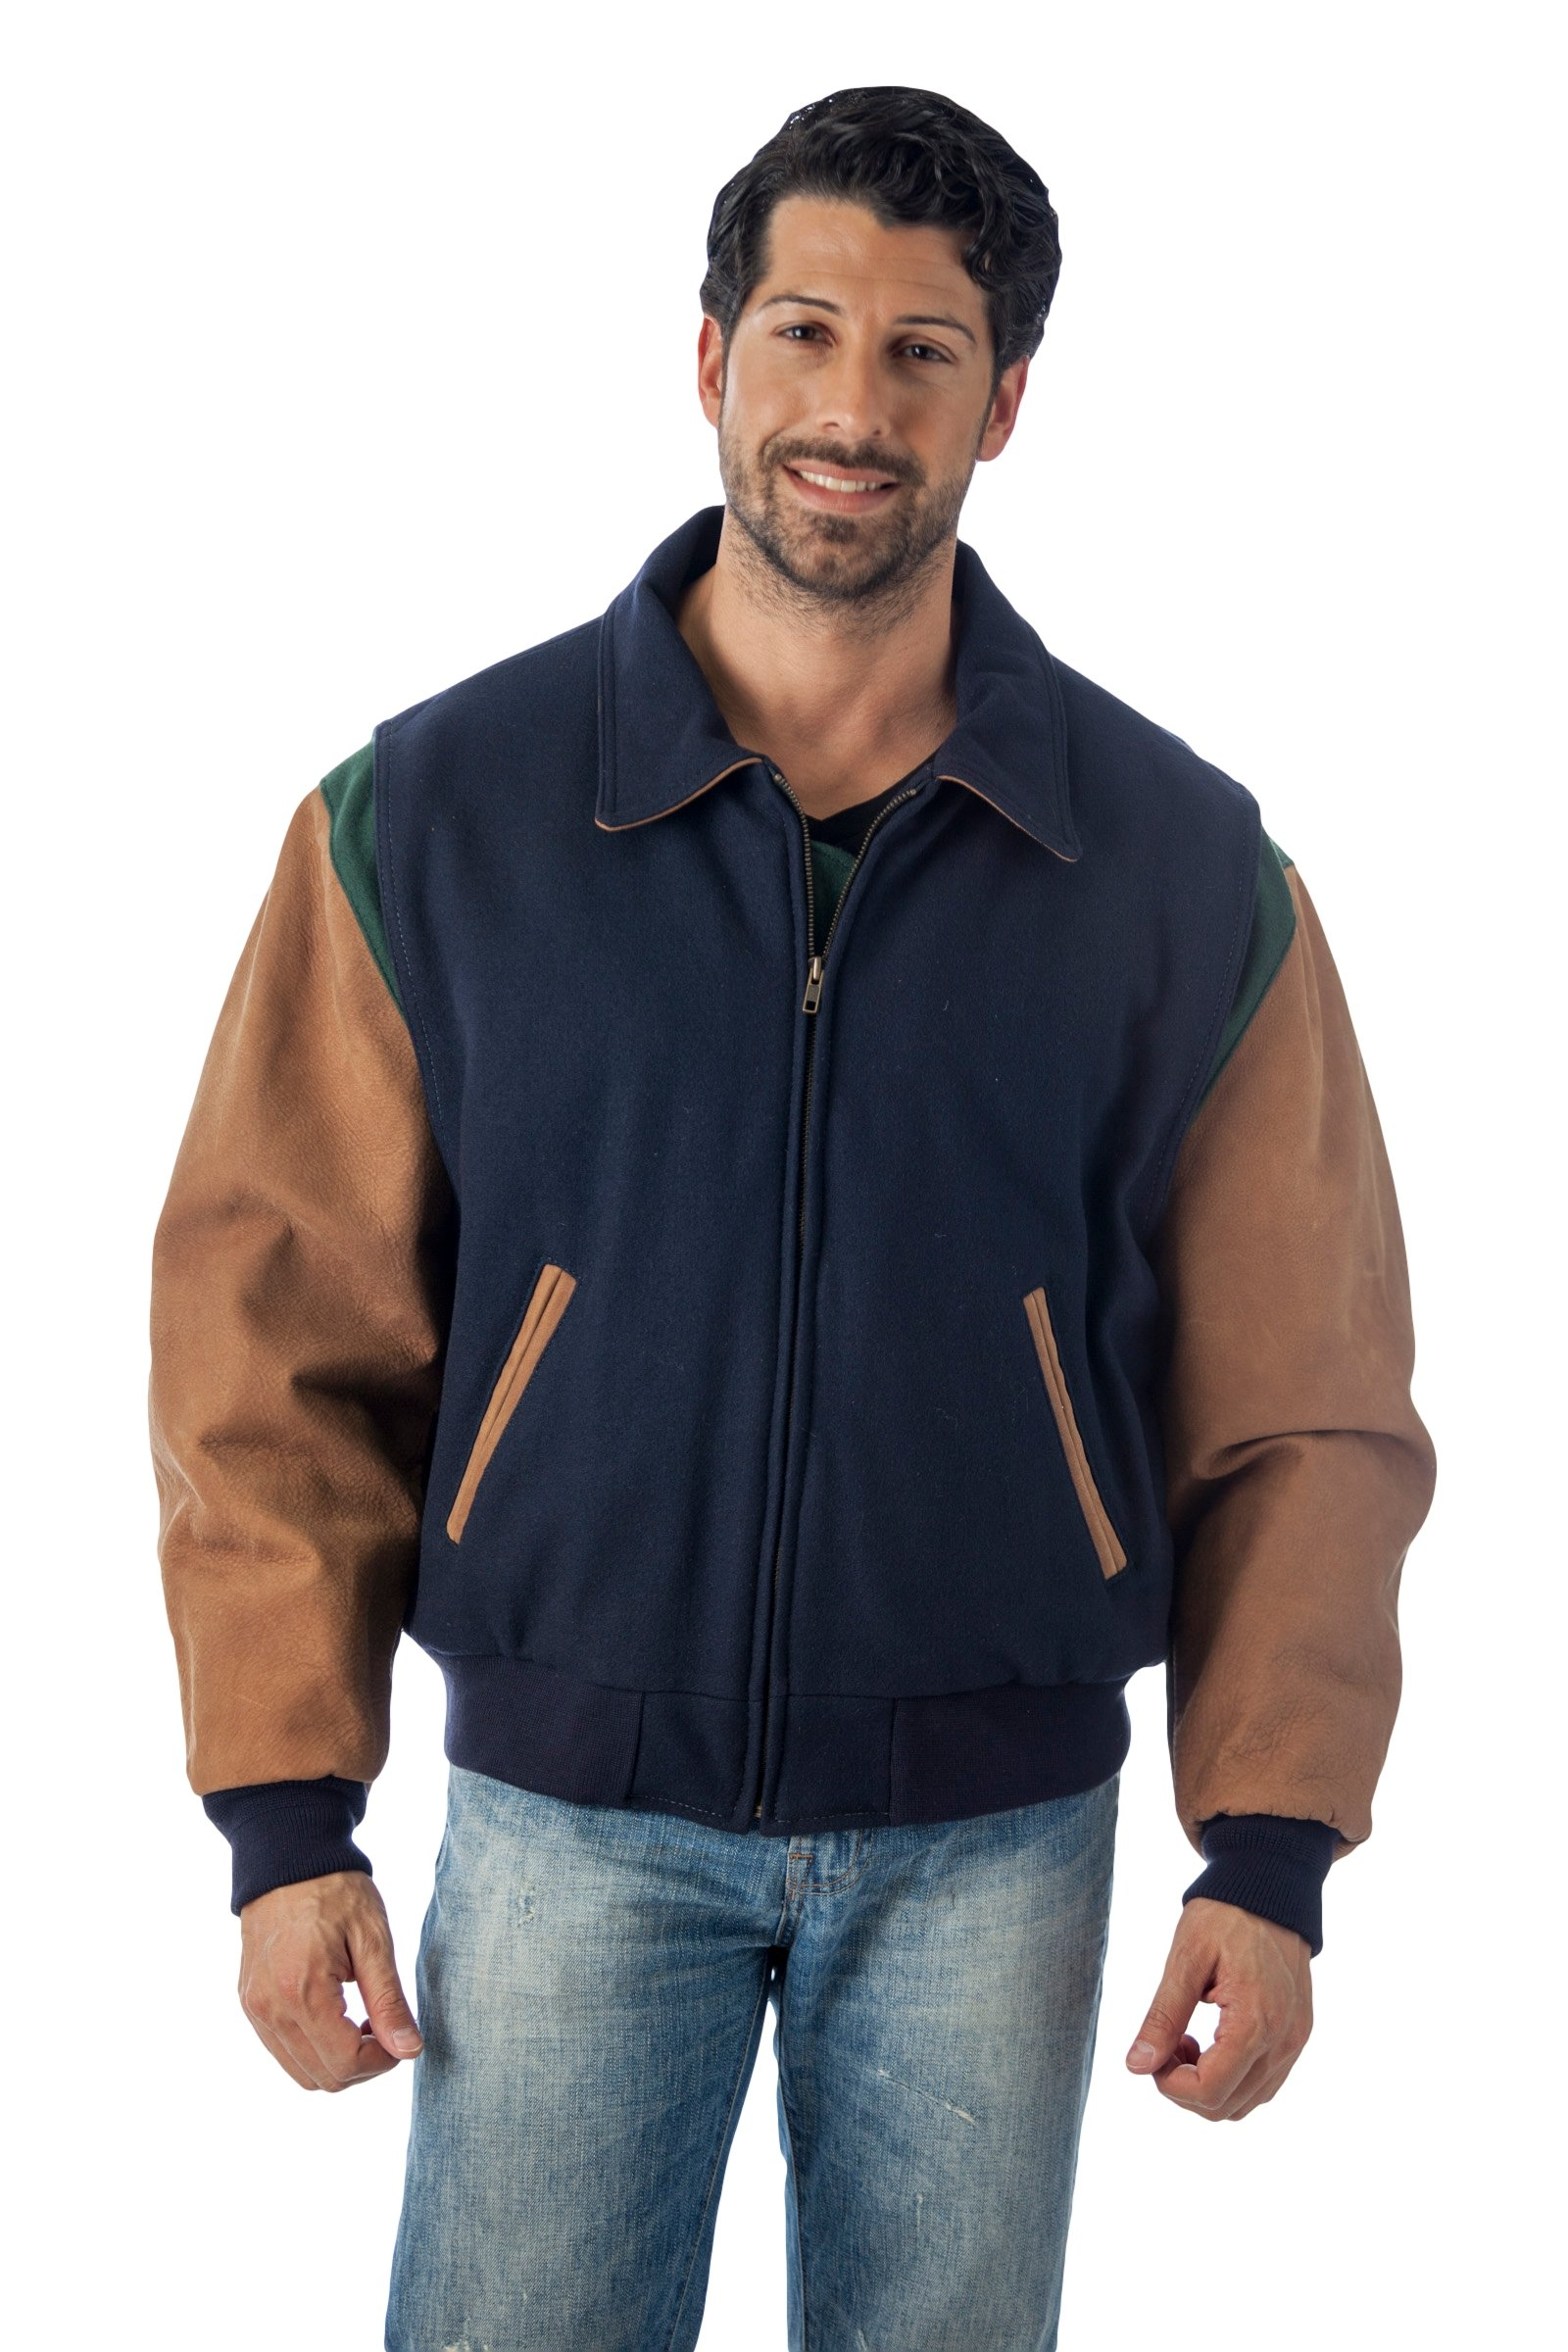 Reed Men's Premium Quality Leather Letterman Varsity Jacket Made in USA (2XT, NAVY) by REED